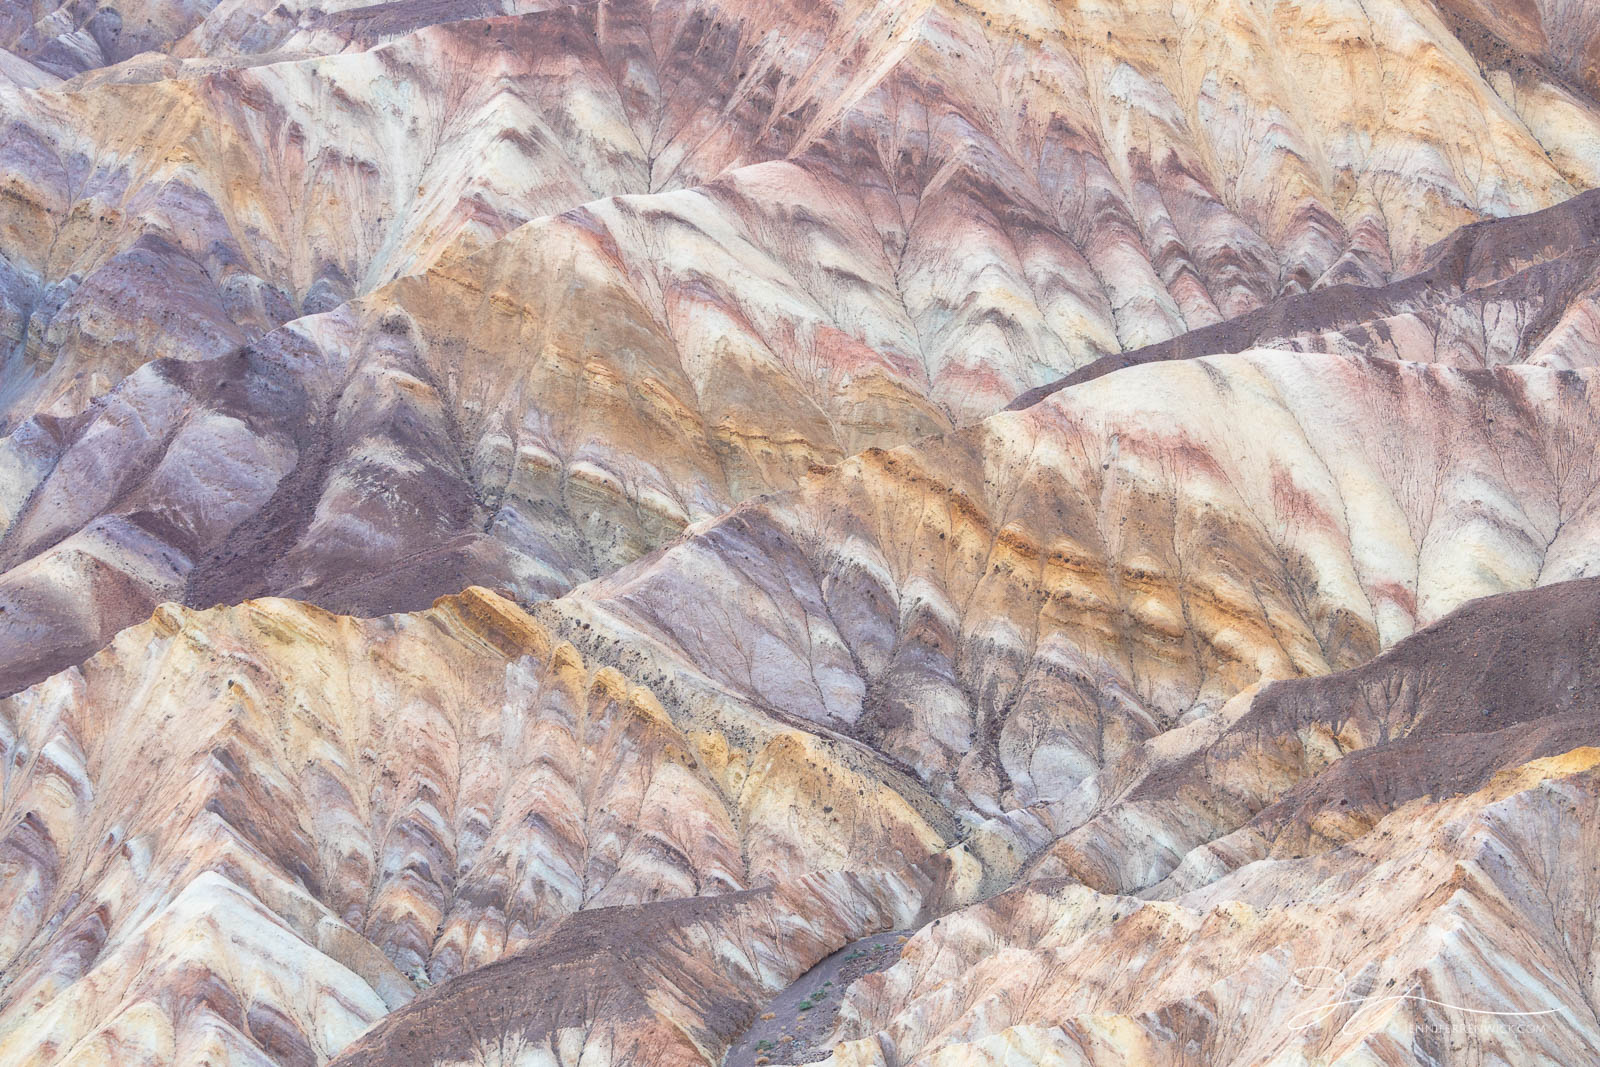 Death Valley National Park, Mojave Desert, Zabriskie Point, California, layers, badlands, landscape, ridges, patterns, texture, abstract photography, photo